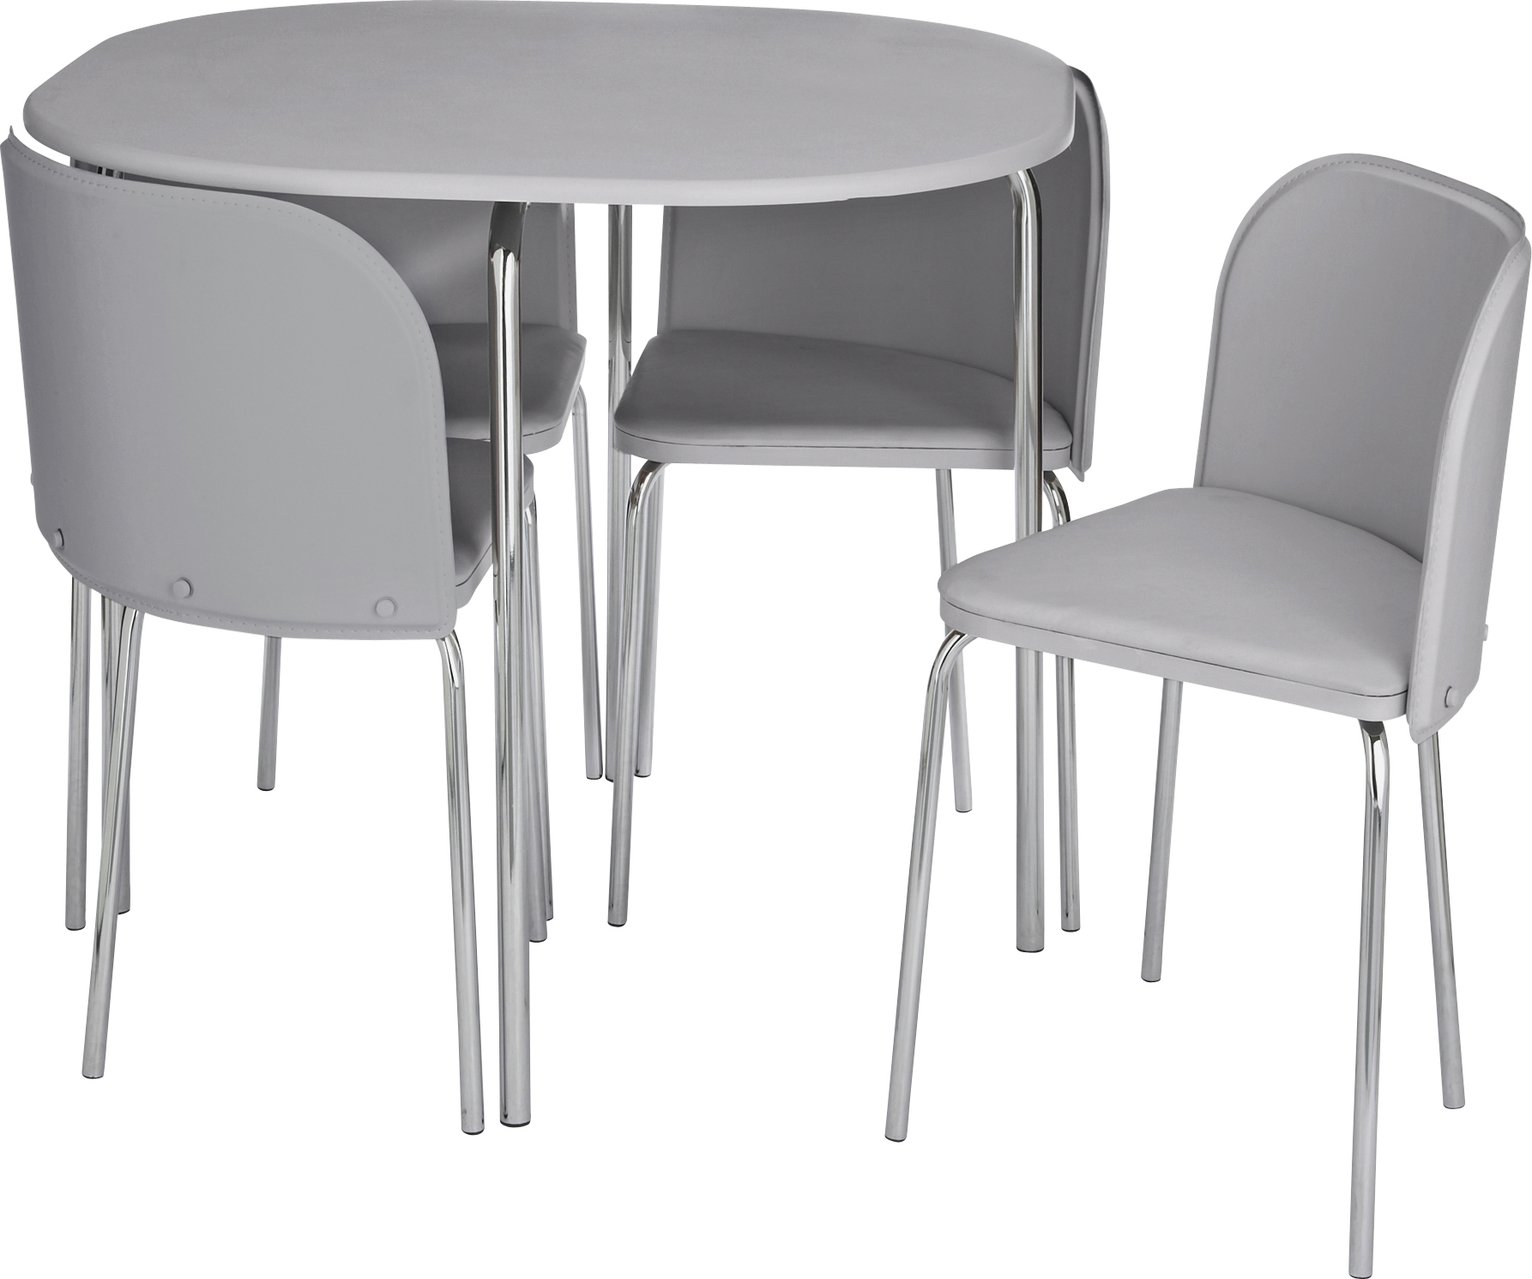 Buy Argos Home Amparo Grey Dining Table U0026 4 Grey Chairs | Dining Table And  Chair Sets | Argos